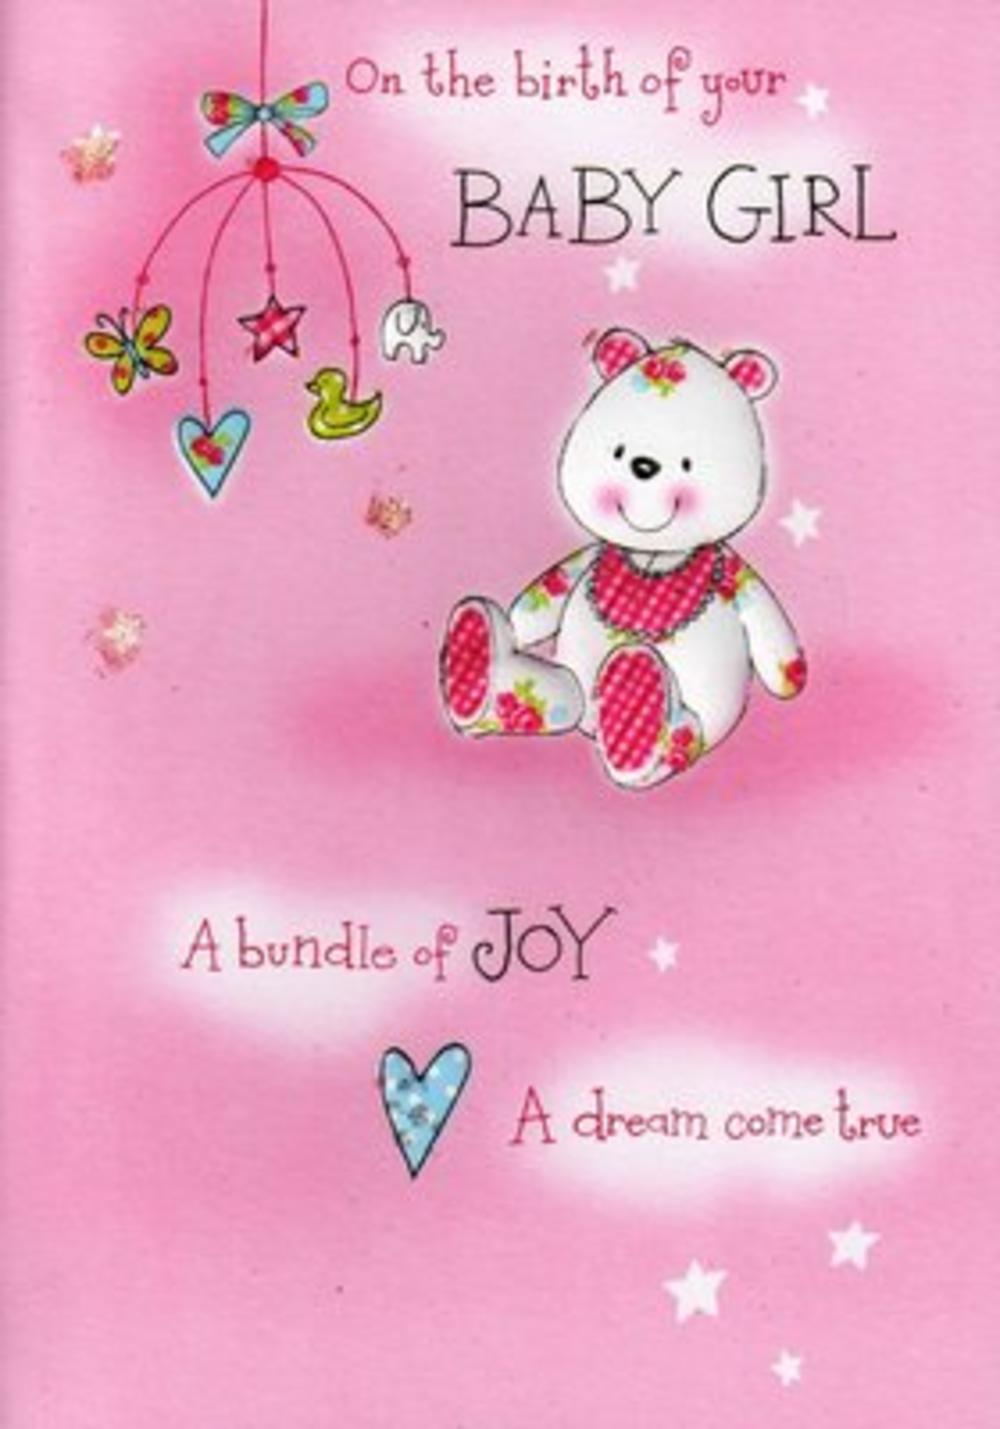 Birth Of New Baby Girl Poetry In Motion Card Baby Girls